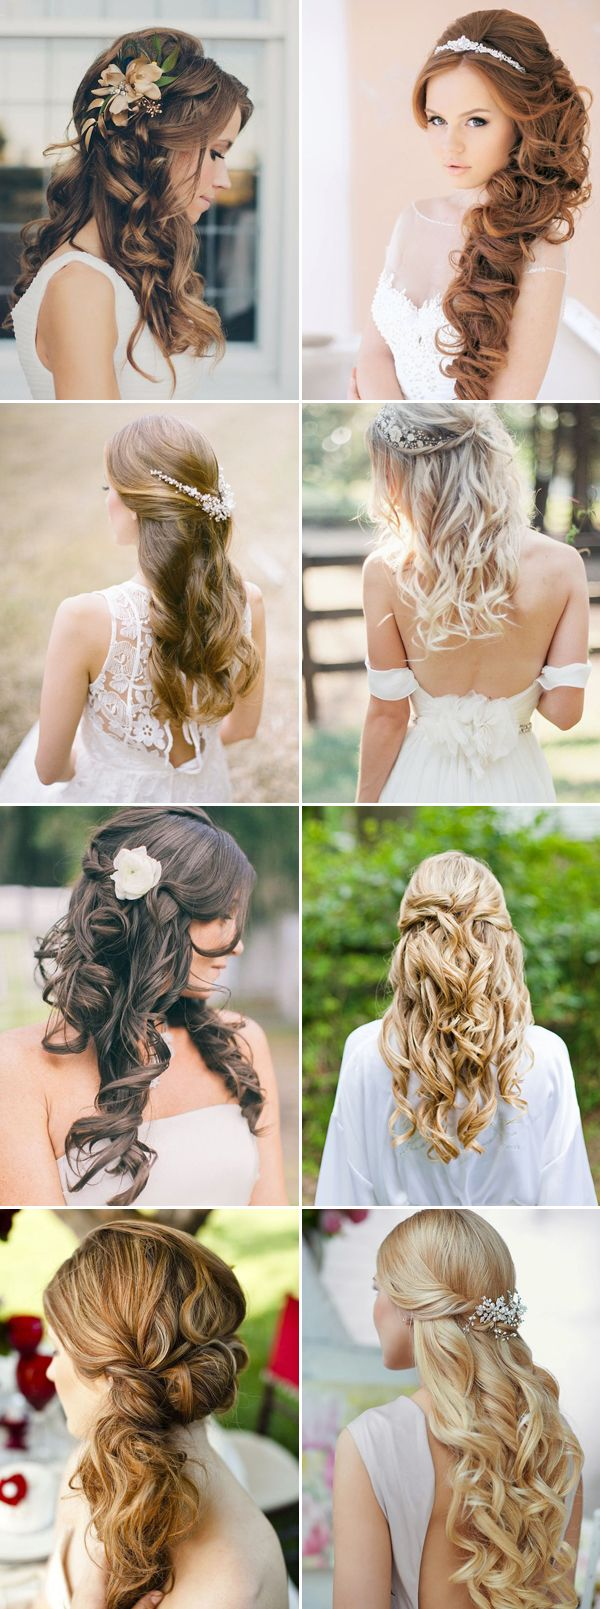 16 Gorgeous Half Up, Half Down Hairstyles for Brides